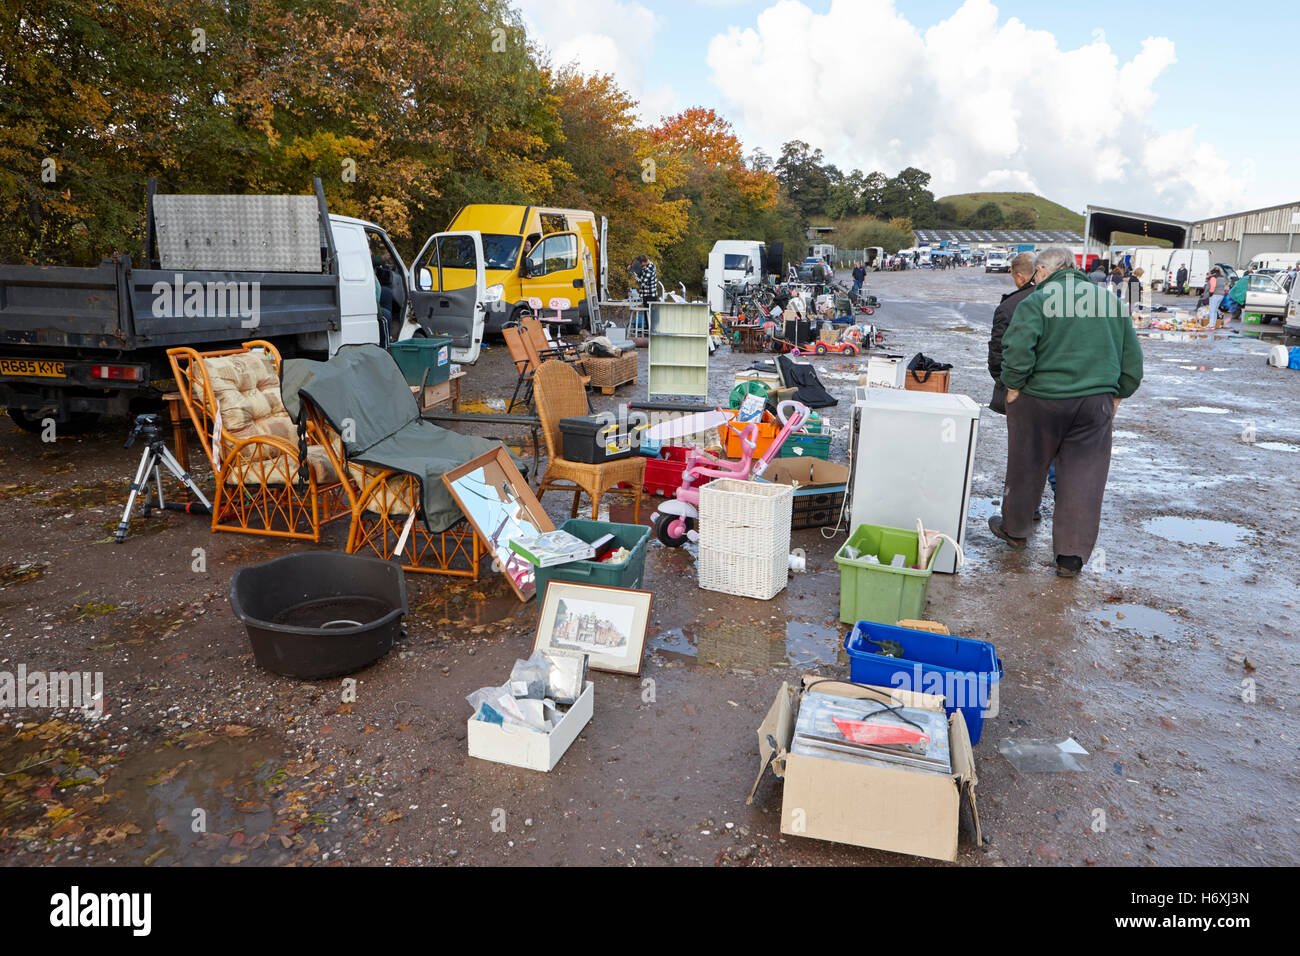 Car Boot Sale dans une zone rurale en Angleterre Photo Stock